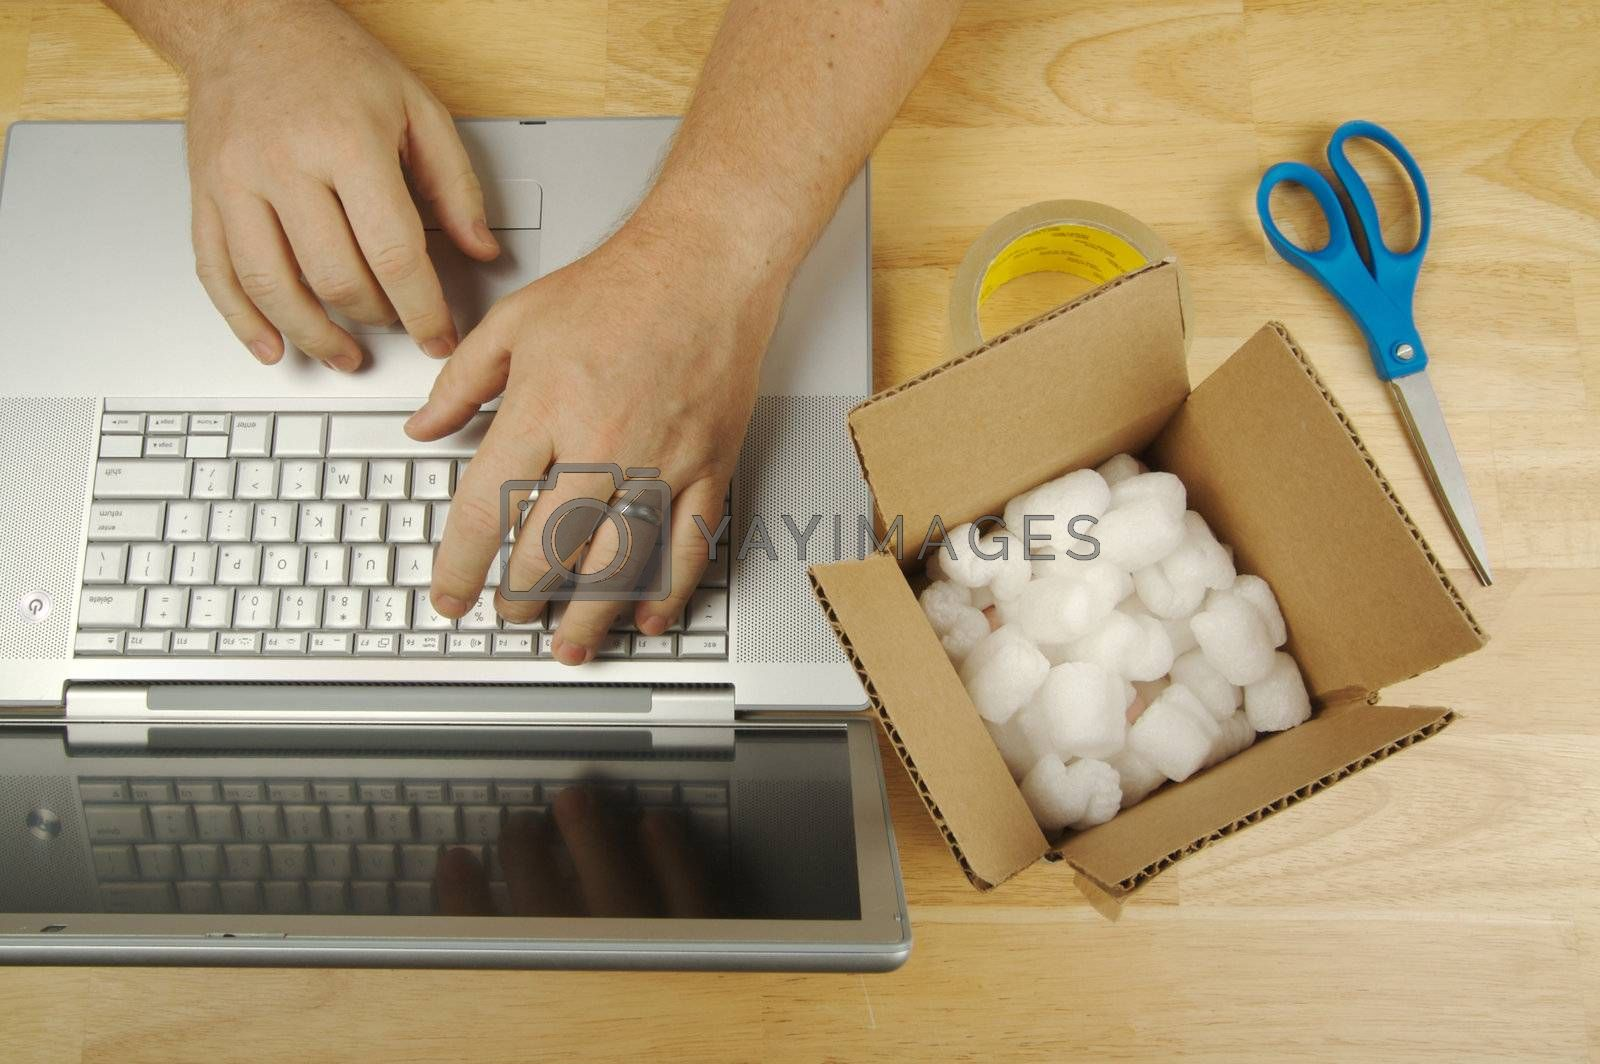 Businessman Works on Laptop with Packaging materials at his side.